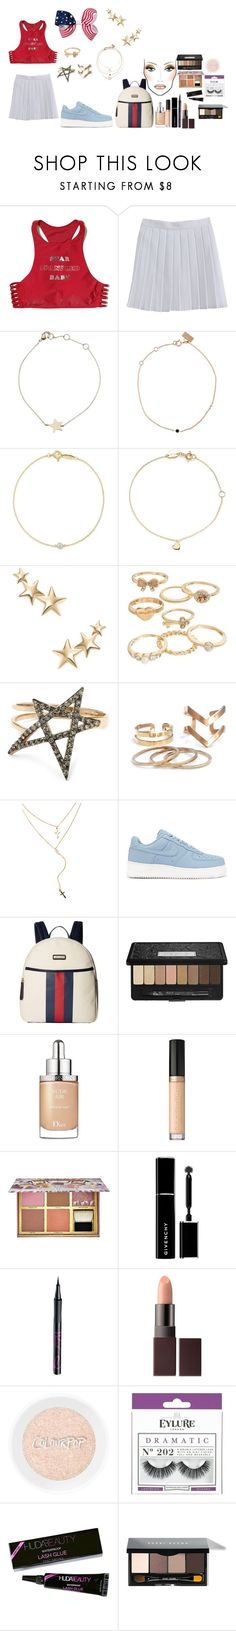 """""""happy 4th of july!!"""" by femalerebell ❤ liked on Polyvore featuring Hollister Co., Estella Bartlett, VANRYCKE, Elsa Peretti, Kenneth Jay Lane, Mudd, Liberty, NIKE, Tommy Hilfiger and Kat Von D"""